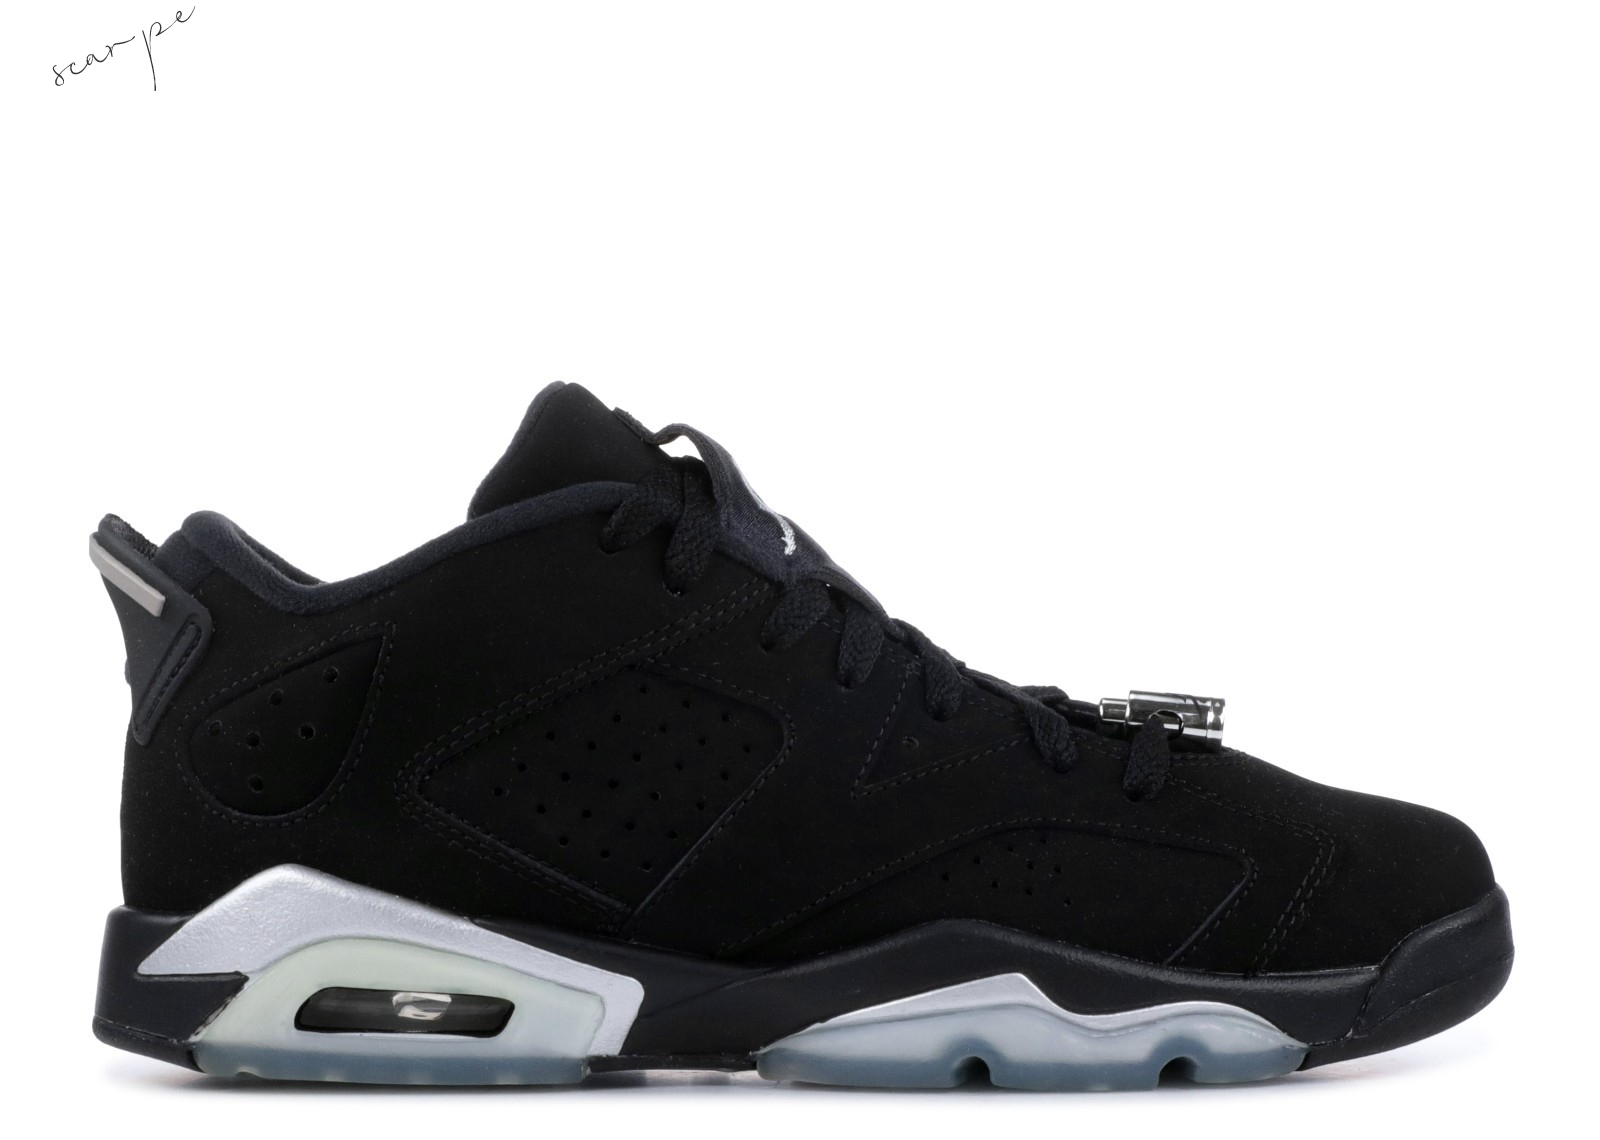 "Vendite Air Jordan 6 Retro Low ""Chrome"" Nero Metallico Argento (304401-003) Scarpe Online"